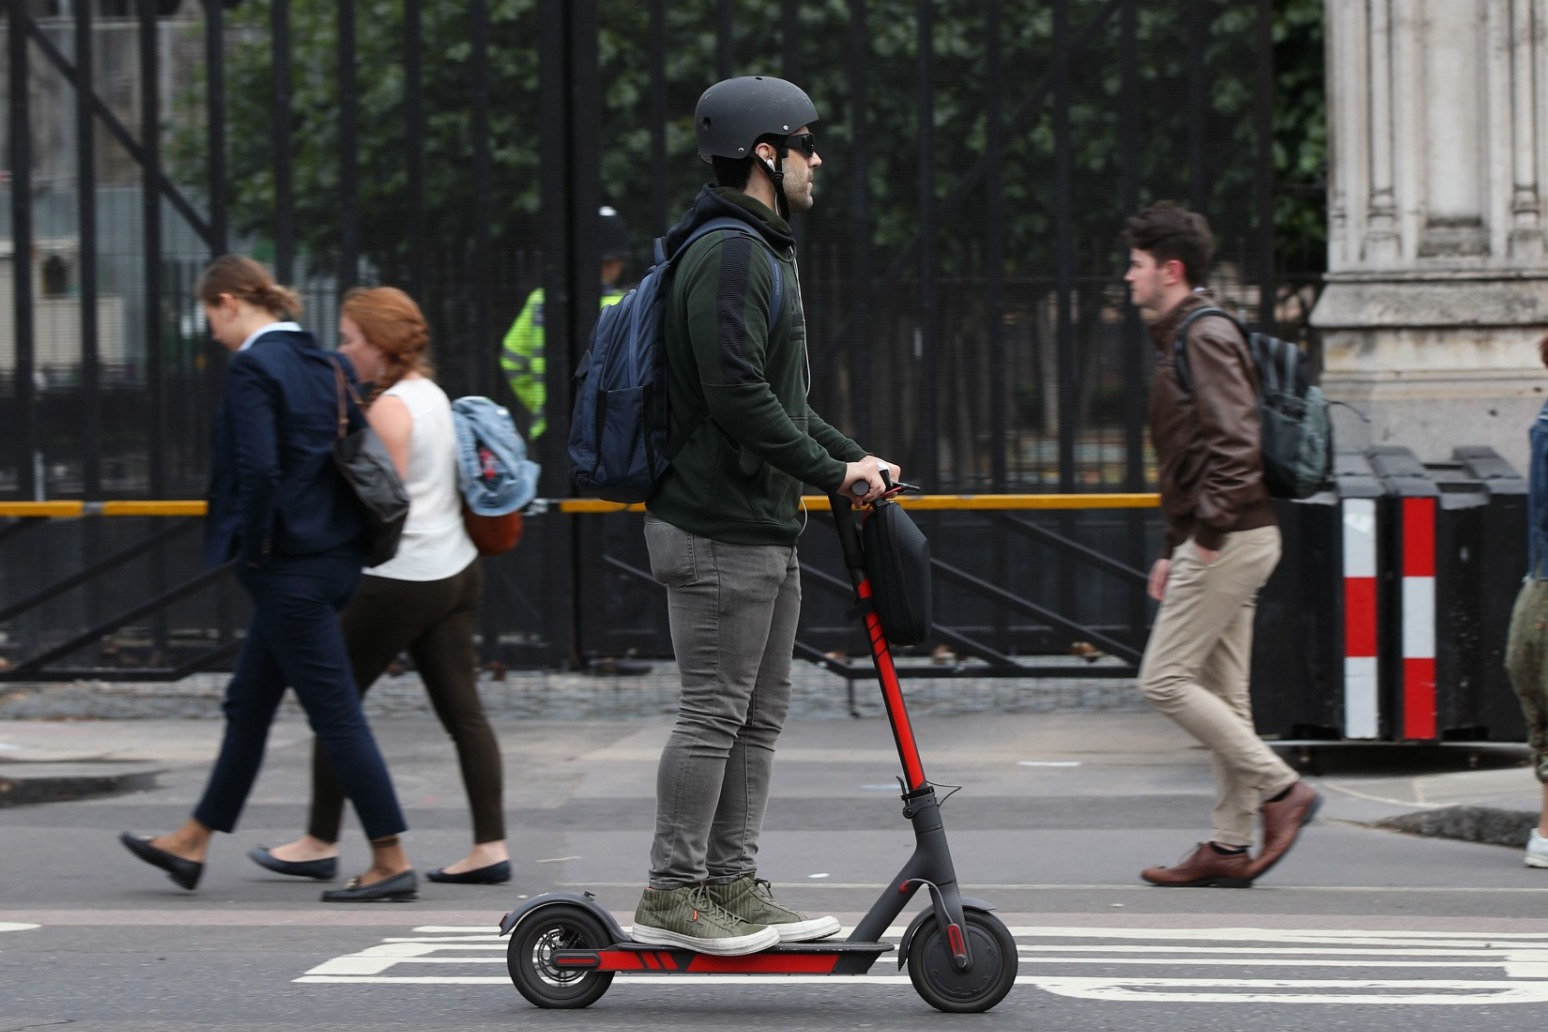 SURVEY REVEALS SUPPORT TO END ROAD BAN FOR ELECTRIC SCOOTERS